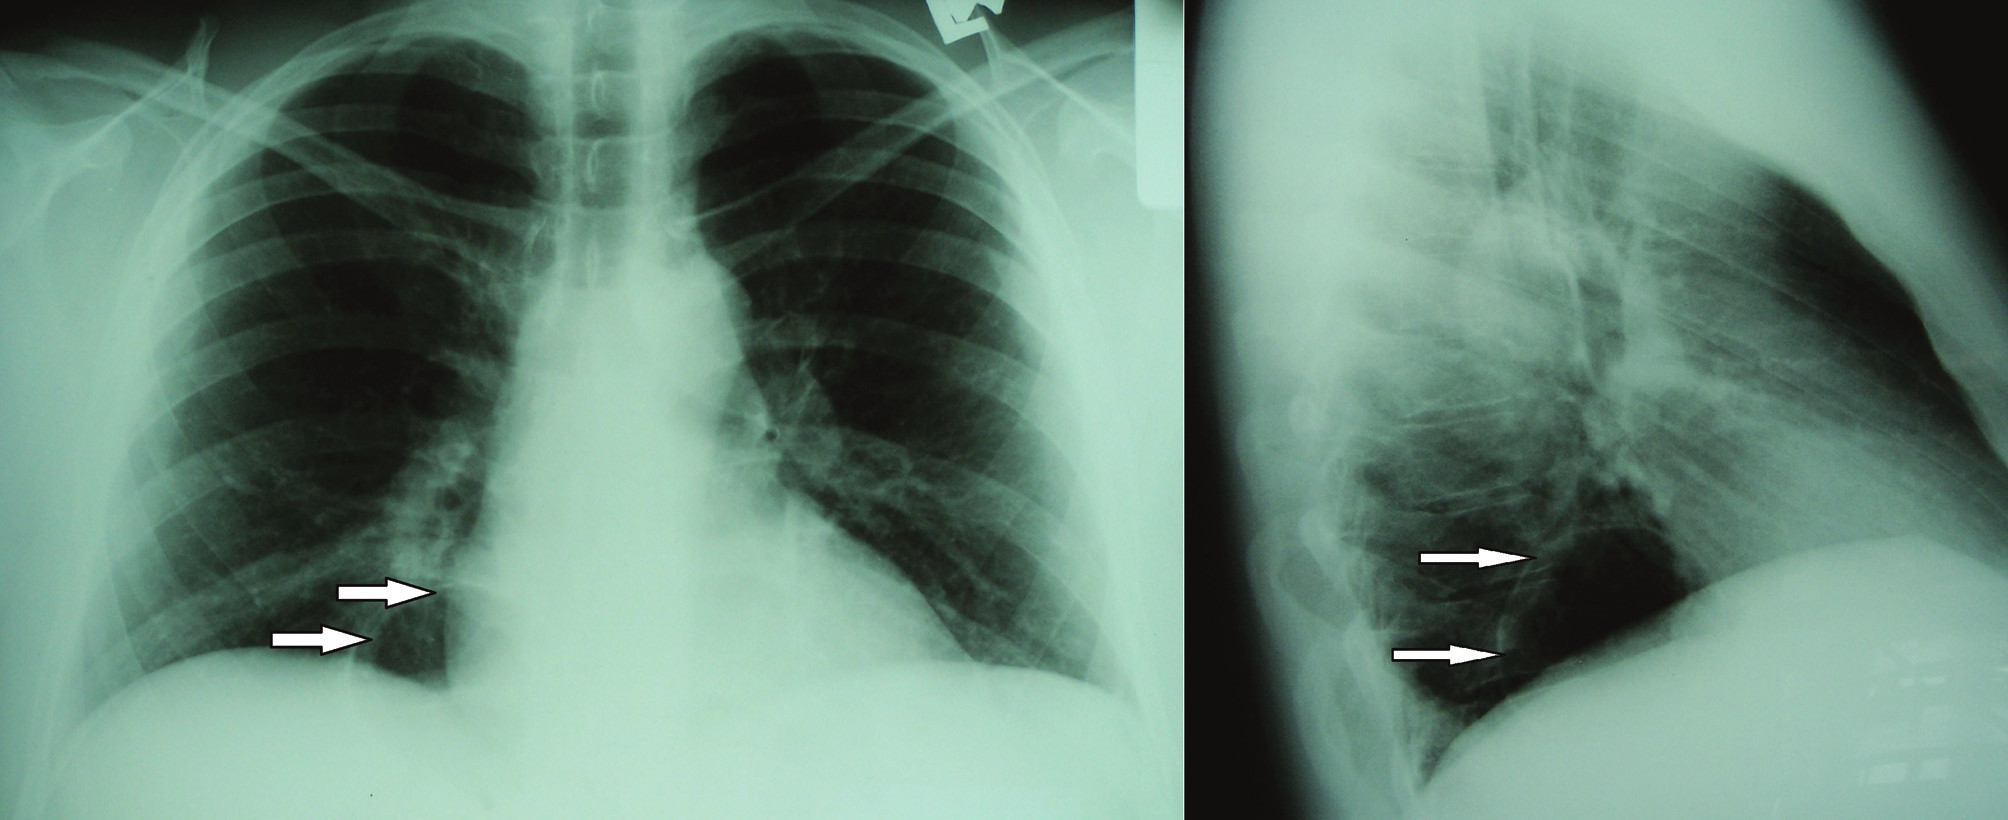 RTG hrudníka s prítomnou tenkostennou transparenciou okrúhleho tvaru v pravom kostofrenickom uhle